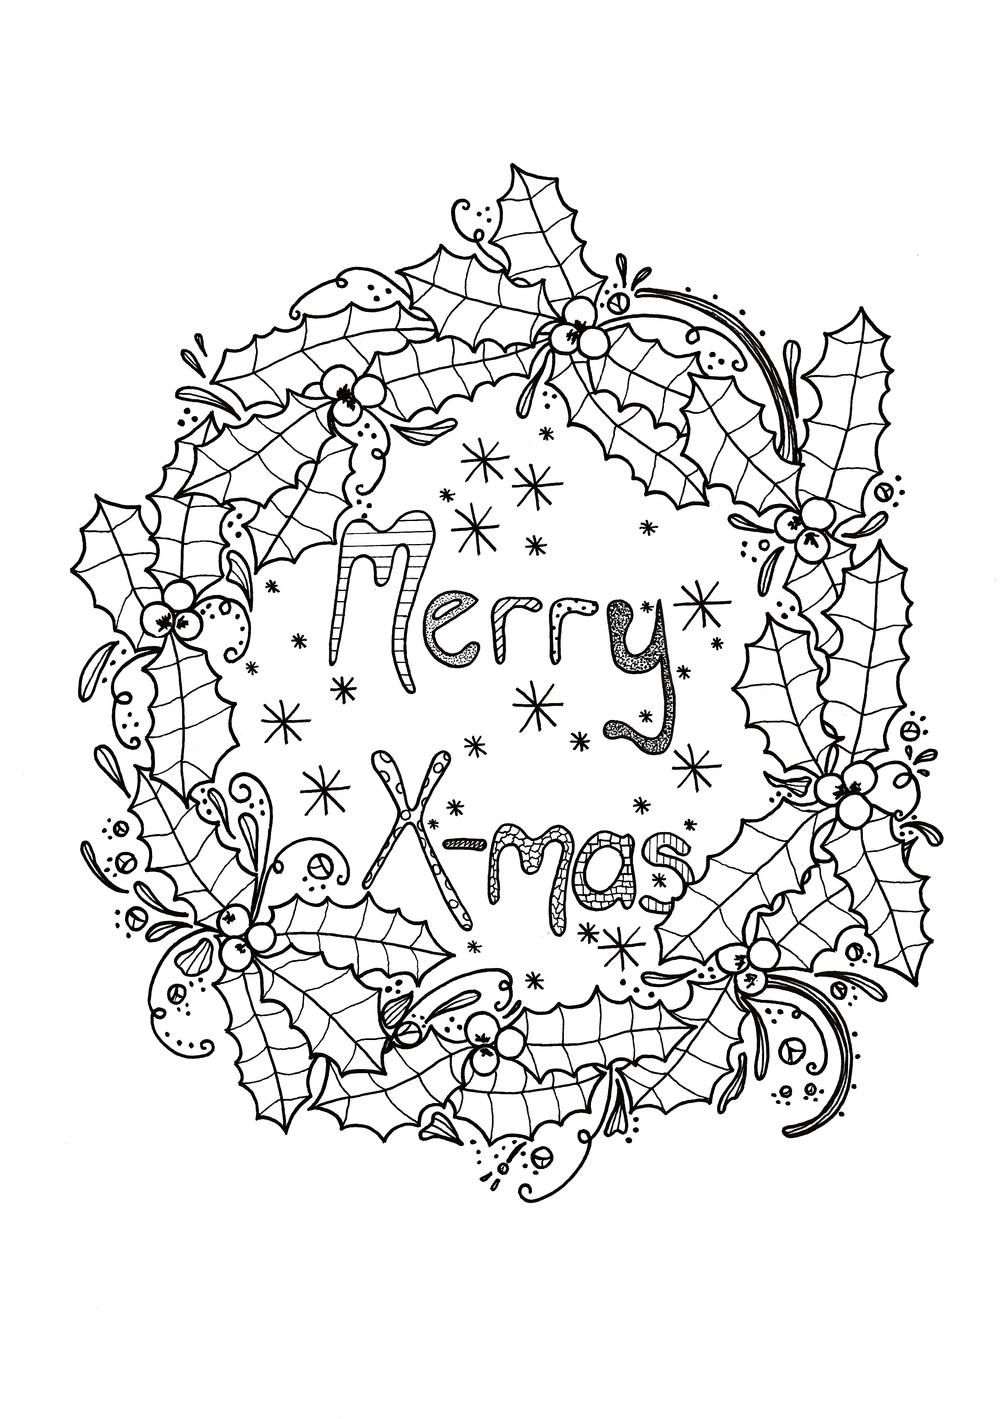 Merry Xmas Wreath Adult Coloring Page Coloring pages